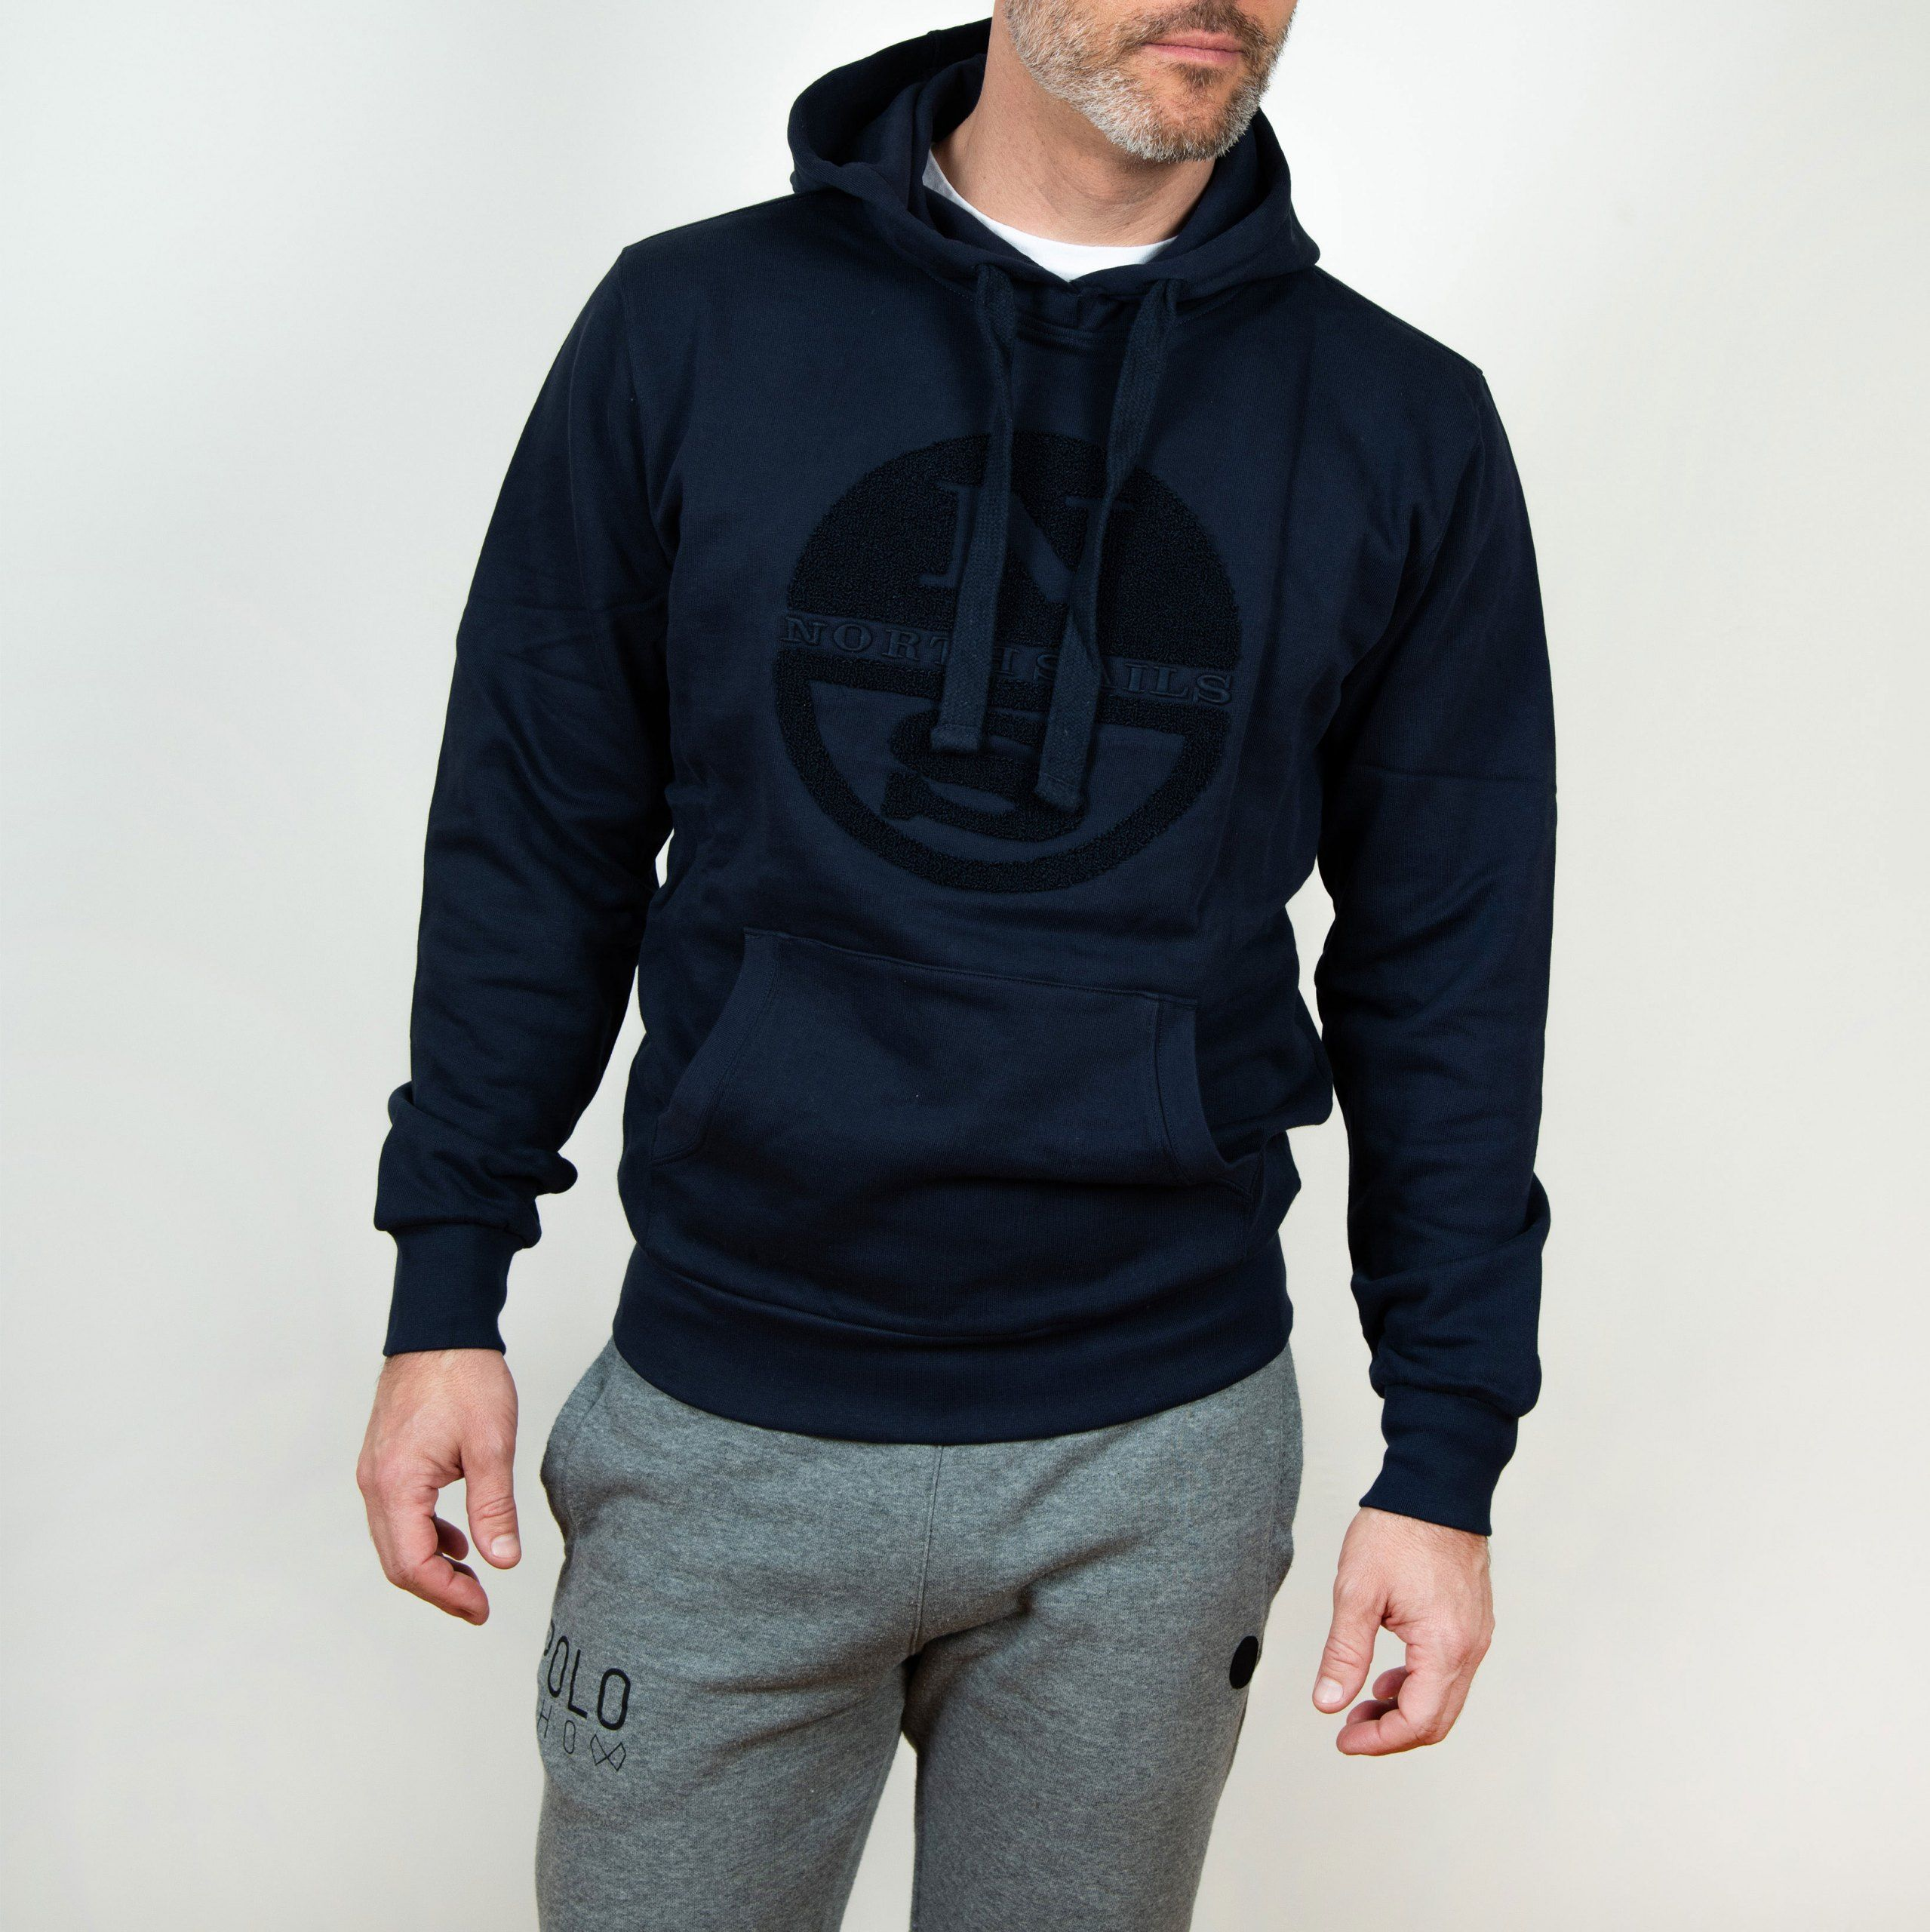 Poloshow North Sails Hooded Sweat Navy Blue 69 1551 000 0802 500 6